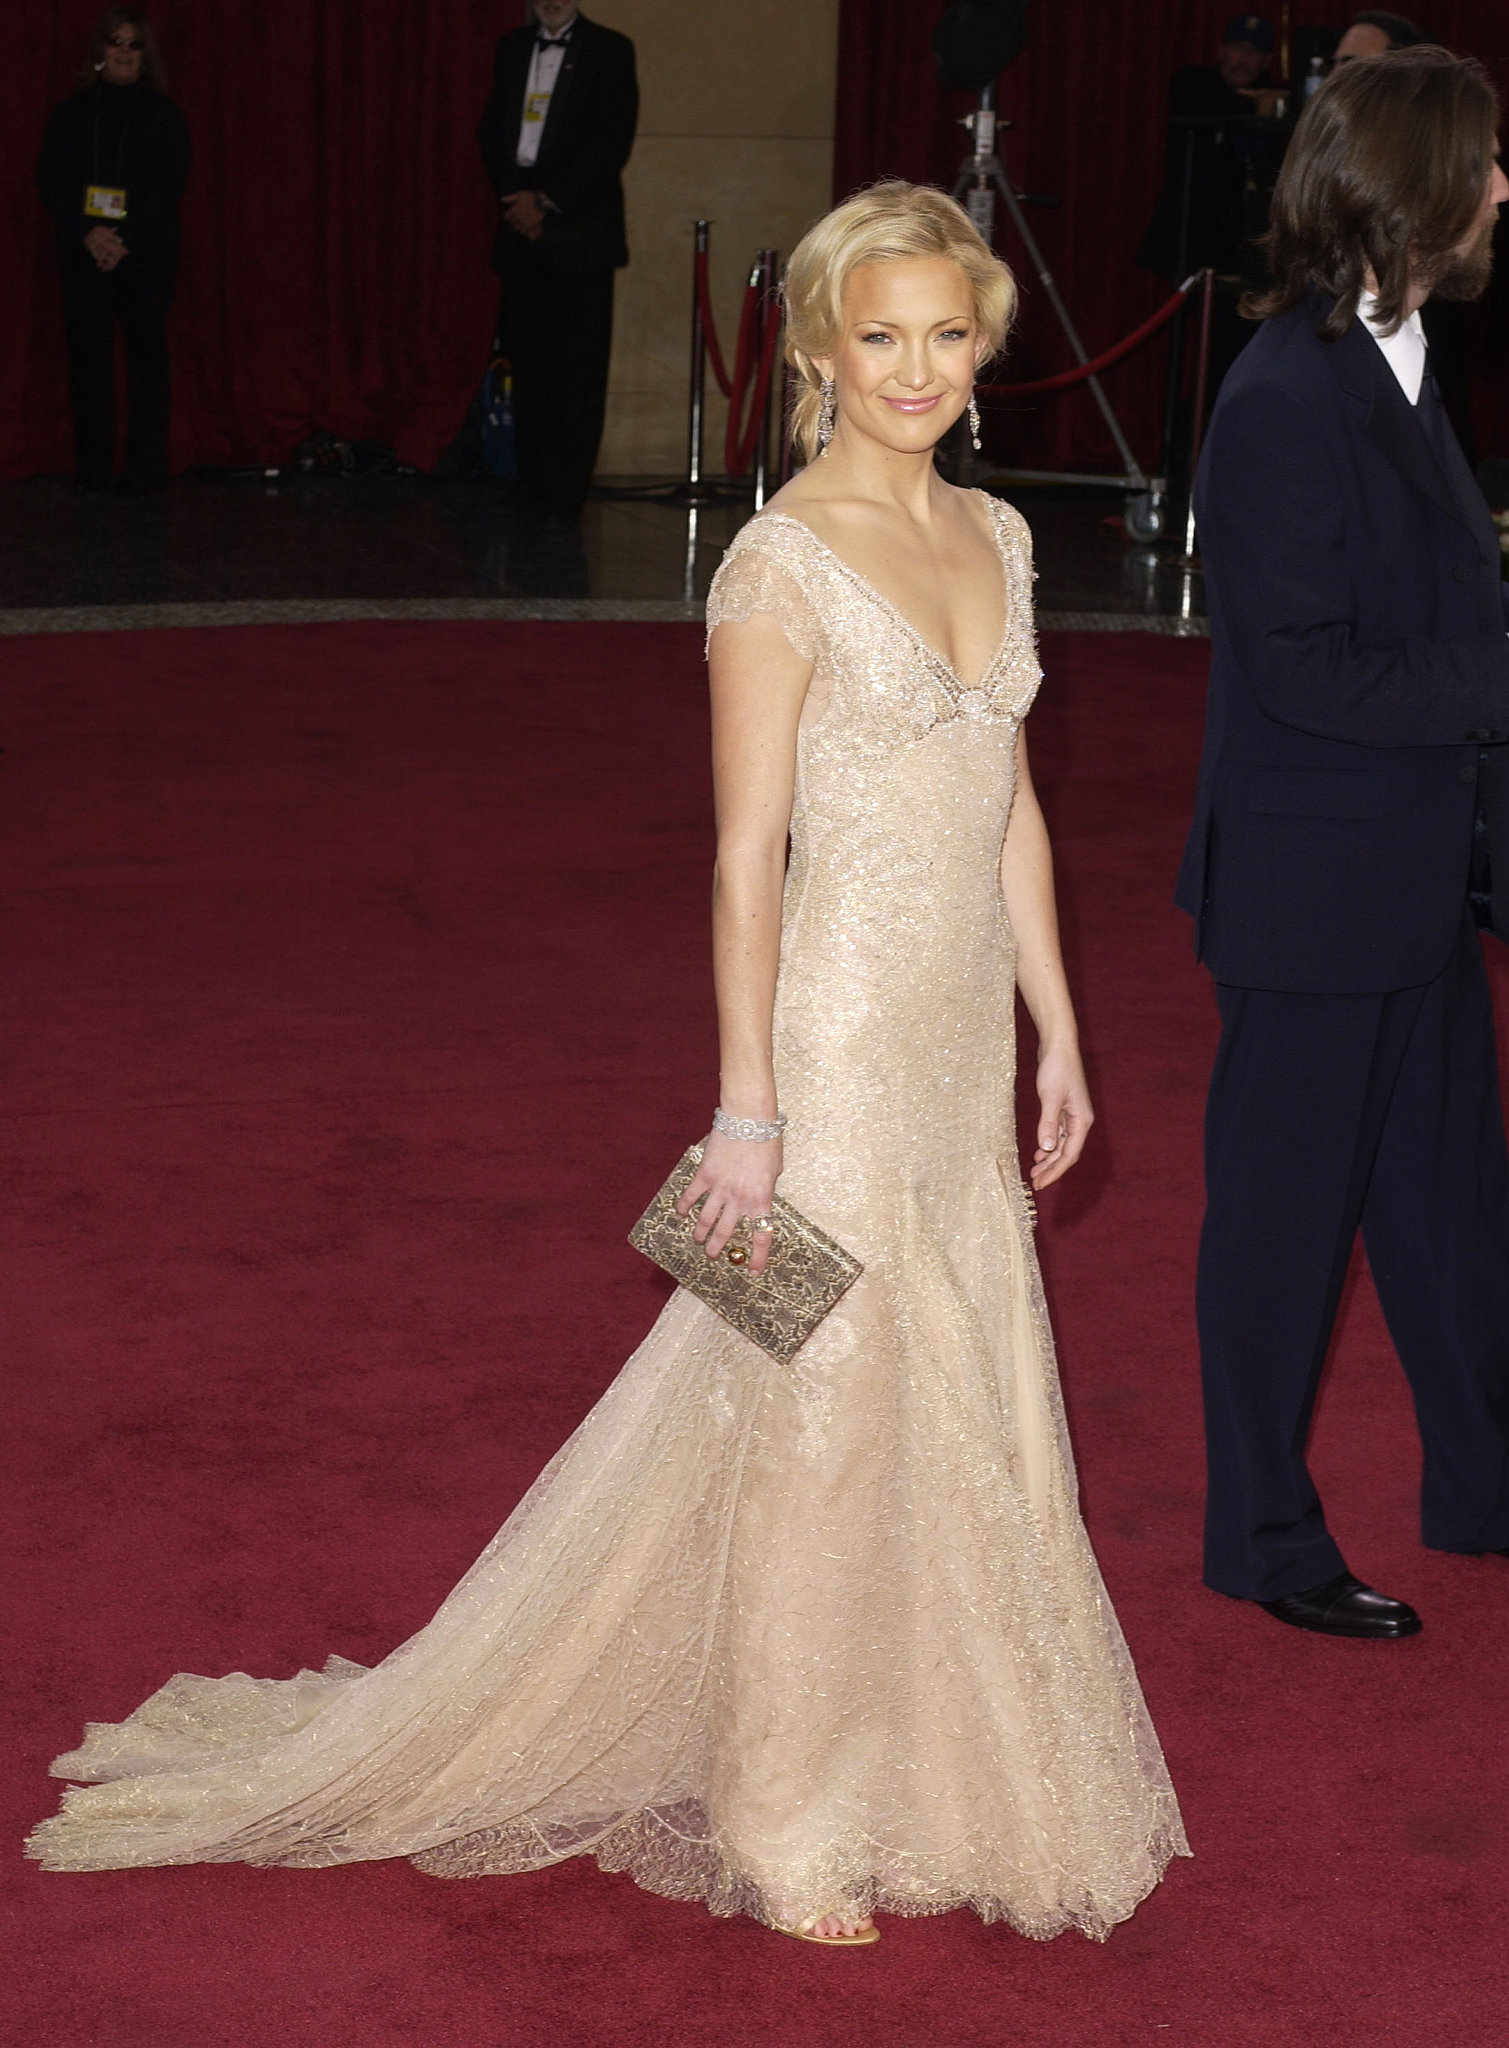 Kate Hudson was at the 2003 award show to present, but her dress stole the show, landing her on multiple best dressed lists.